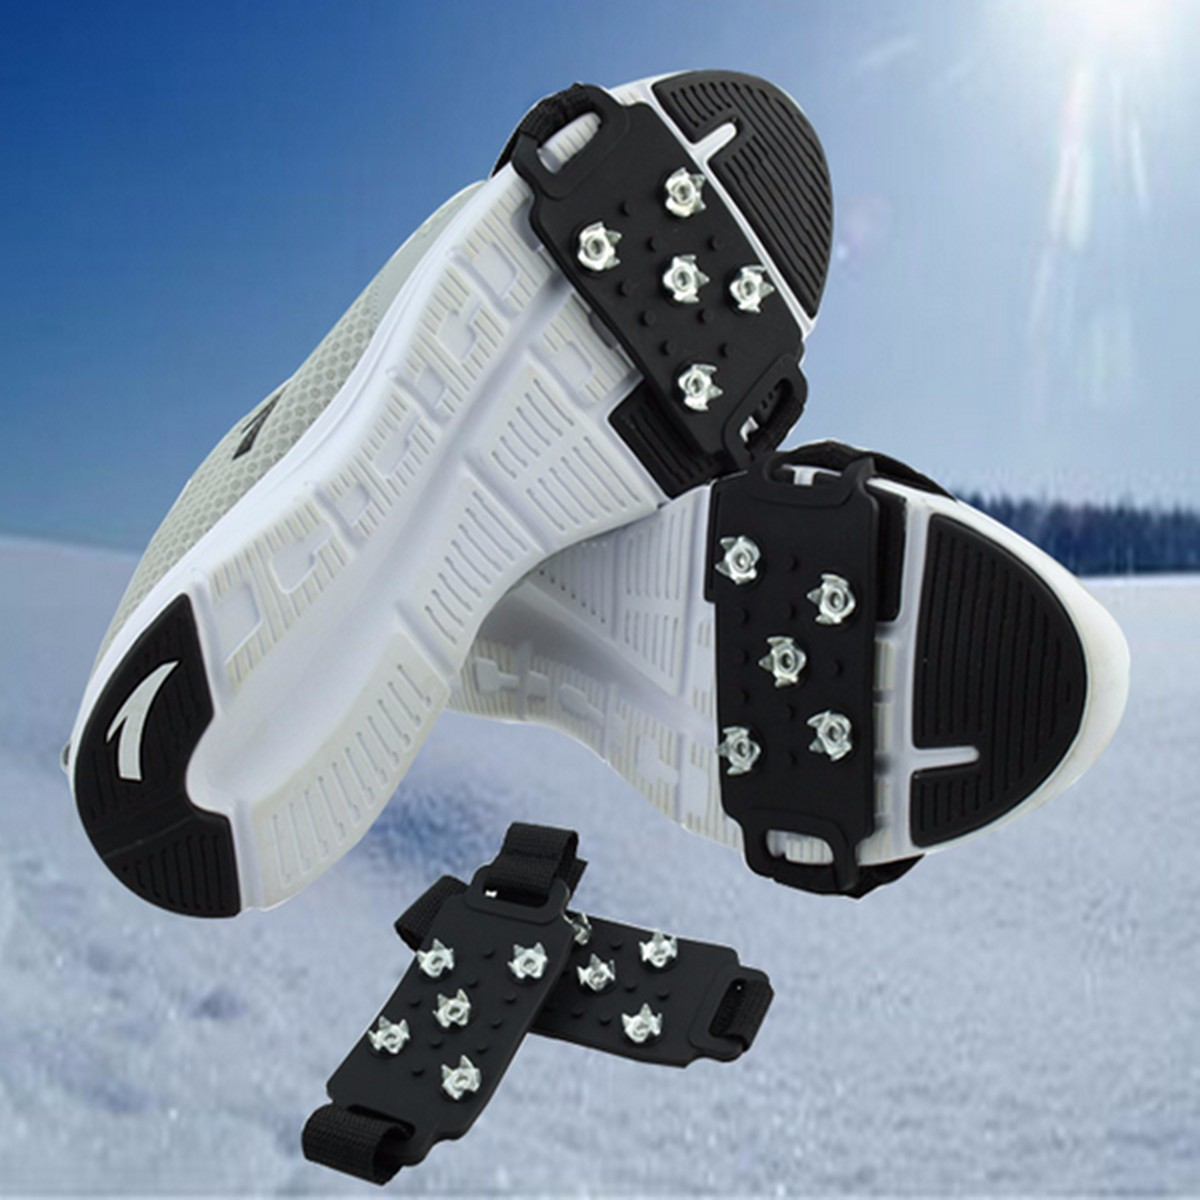 BSAID1Pair Silic Ice Grippers Snow Ice Climbing Anti Slip Spikes Grips Crampon Cleat 5-Stud Shoes Cover Hiking Trekking Slipper bsaid1pair silic ice grippers snow ice climbing anti slip spikes grips crampon cleat 5 stud shoes cover hiking trekking slipper